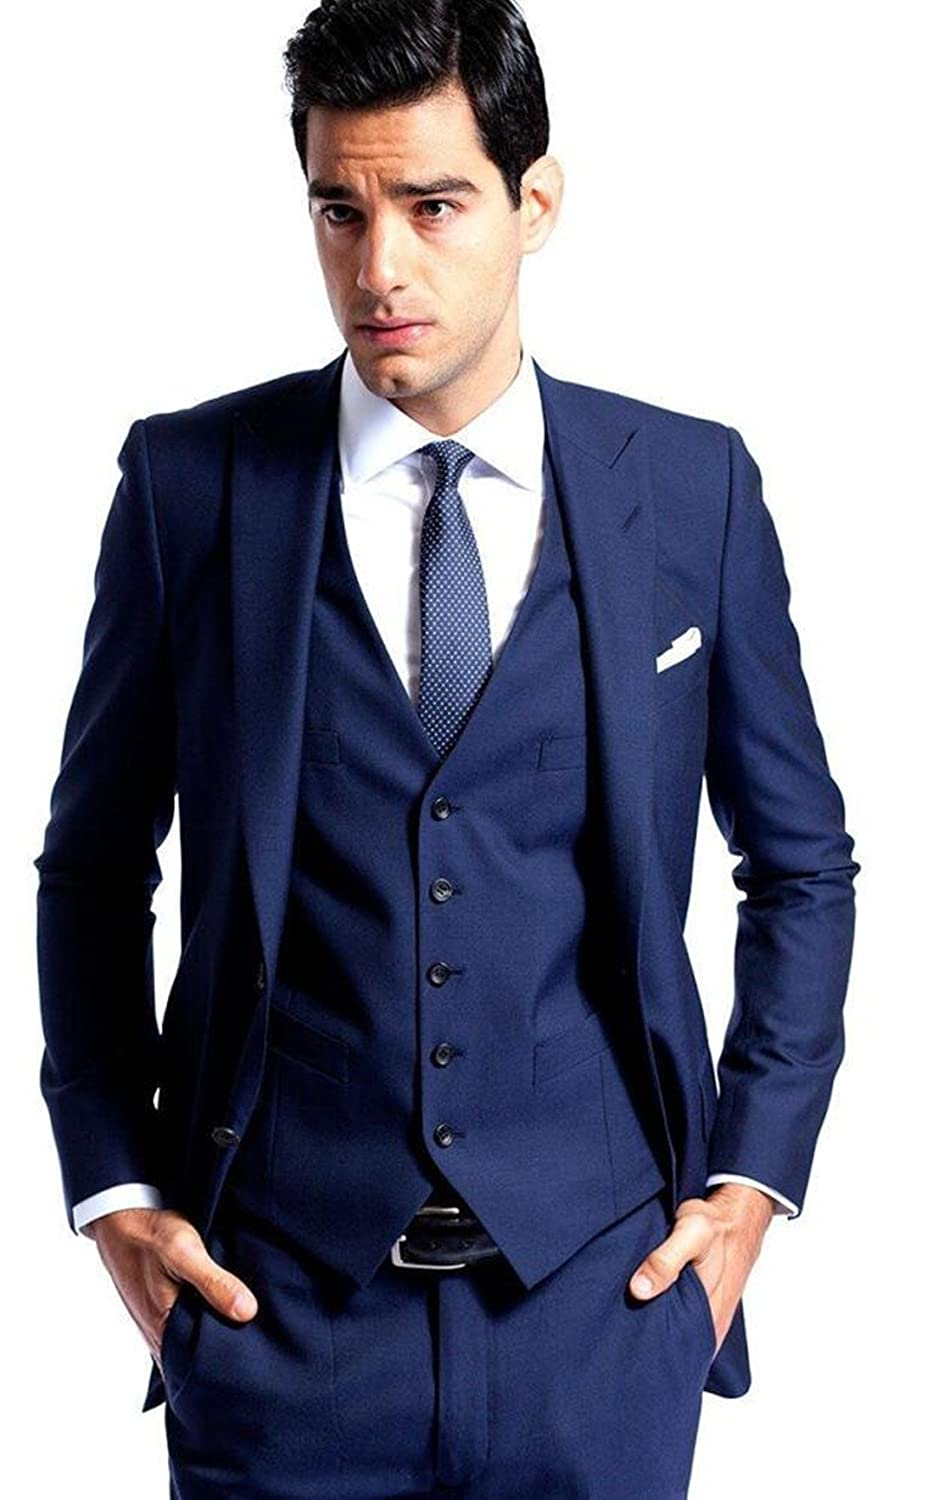 ee8ec05fd286 Men's Wedding Suits Slim Fit Groom Tuxedos 3-Pieces Custom Made Prom Suit  at Amazon Men's Clothing store: